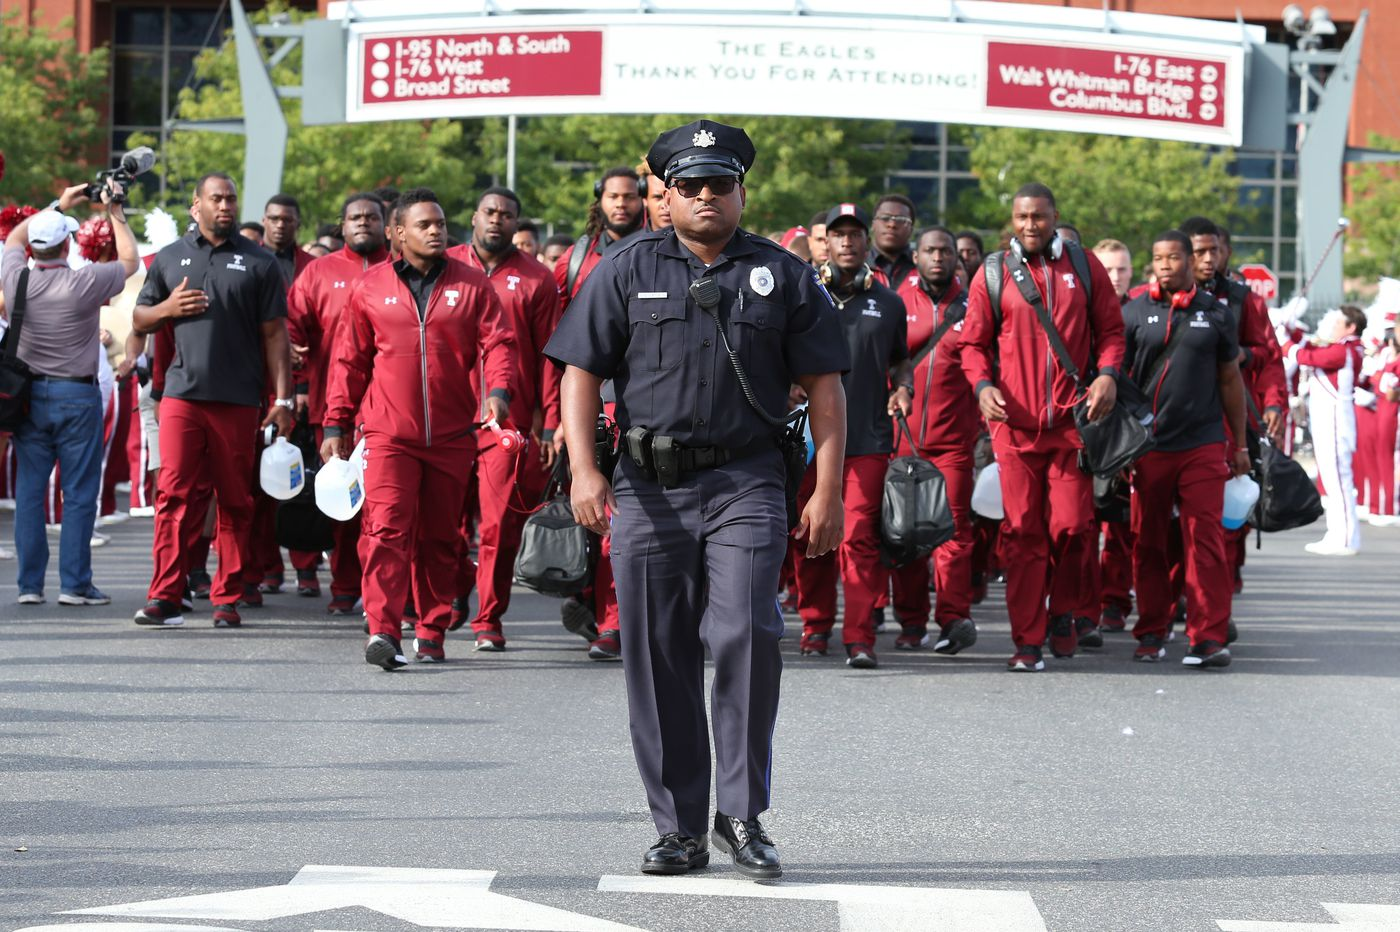 Officer James Jones was a Temple football star in his own unique way | Mike Jensen